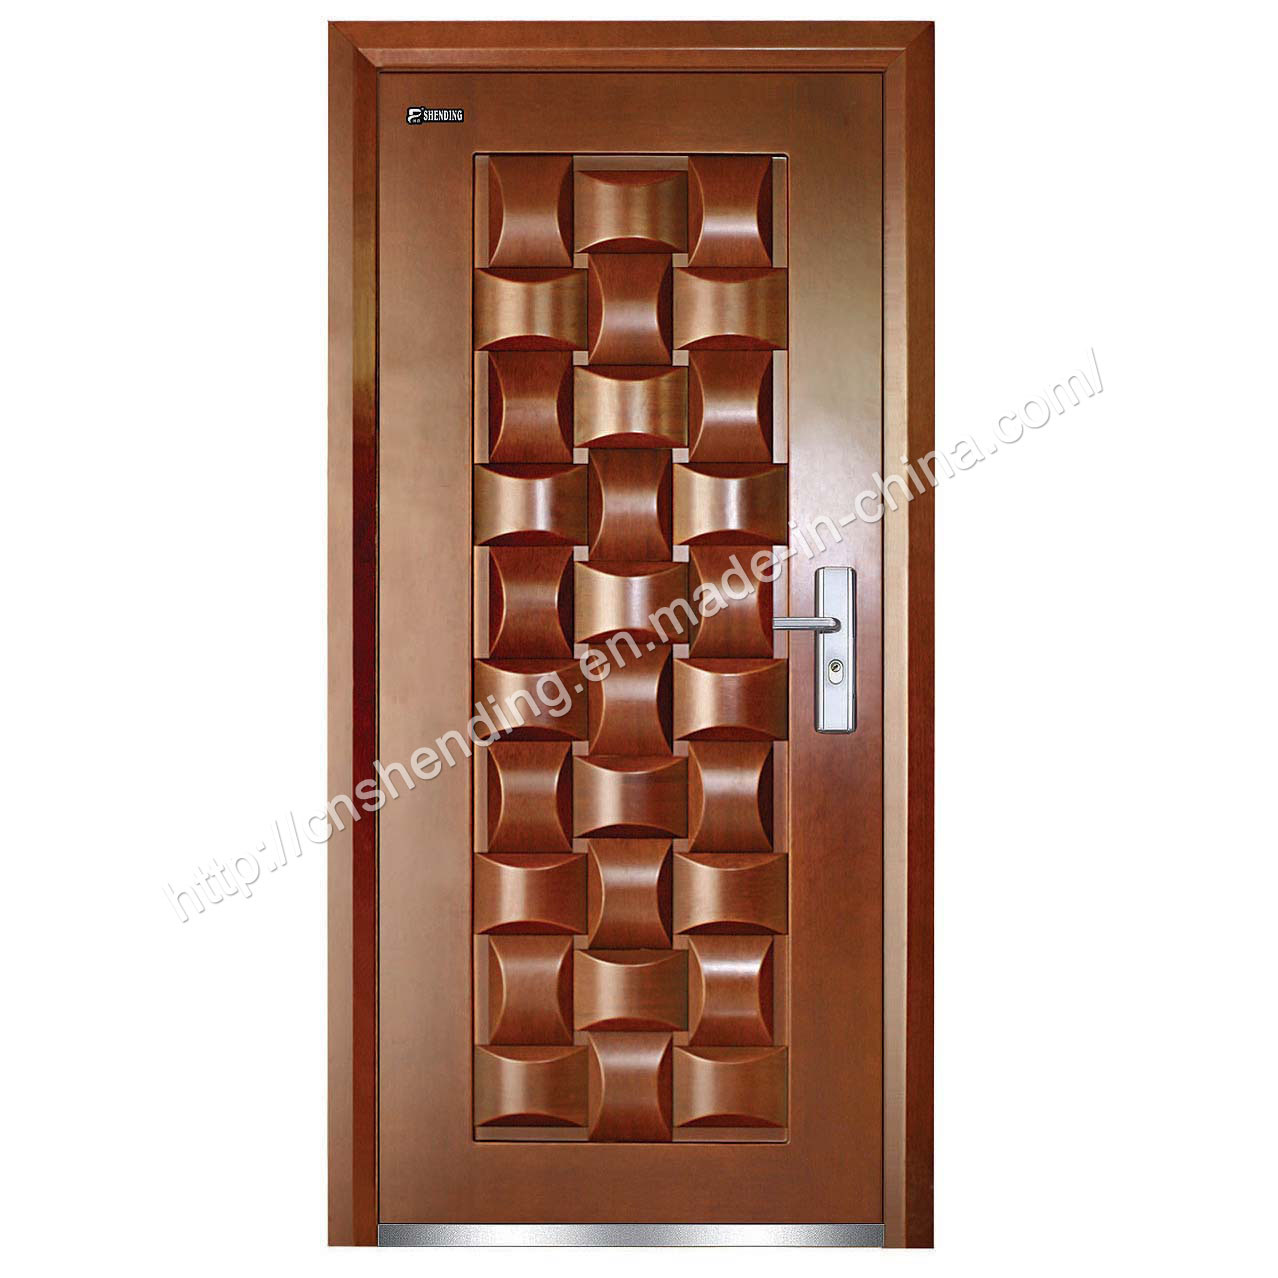 High Quality Exterior Doors Jefferson Door: China High Quality Steel- Door (SD-302) Photos & Pictures